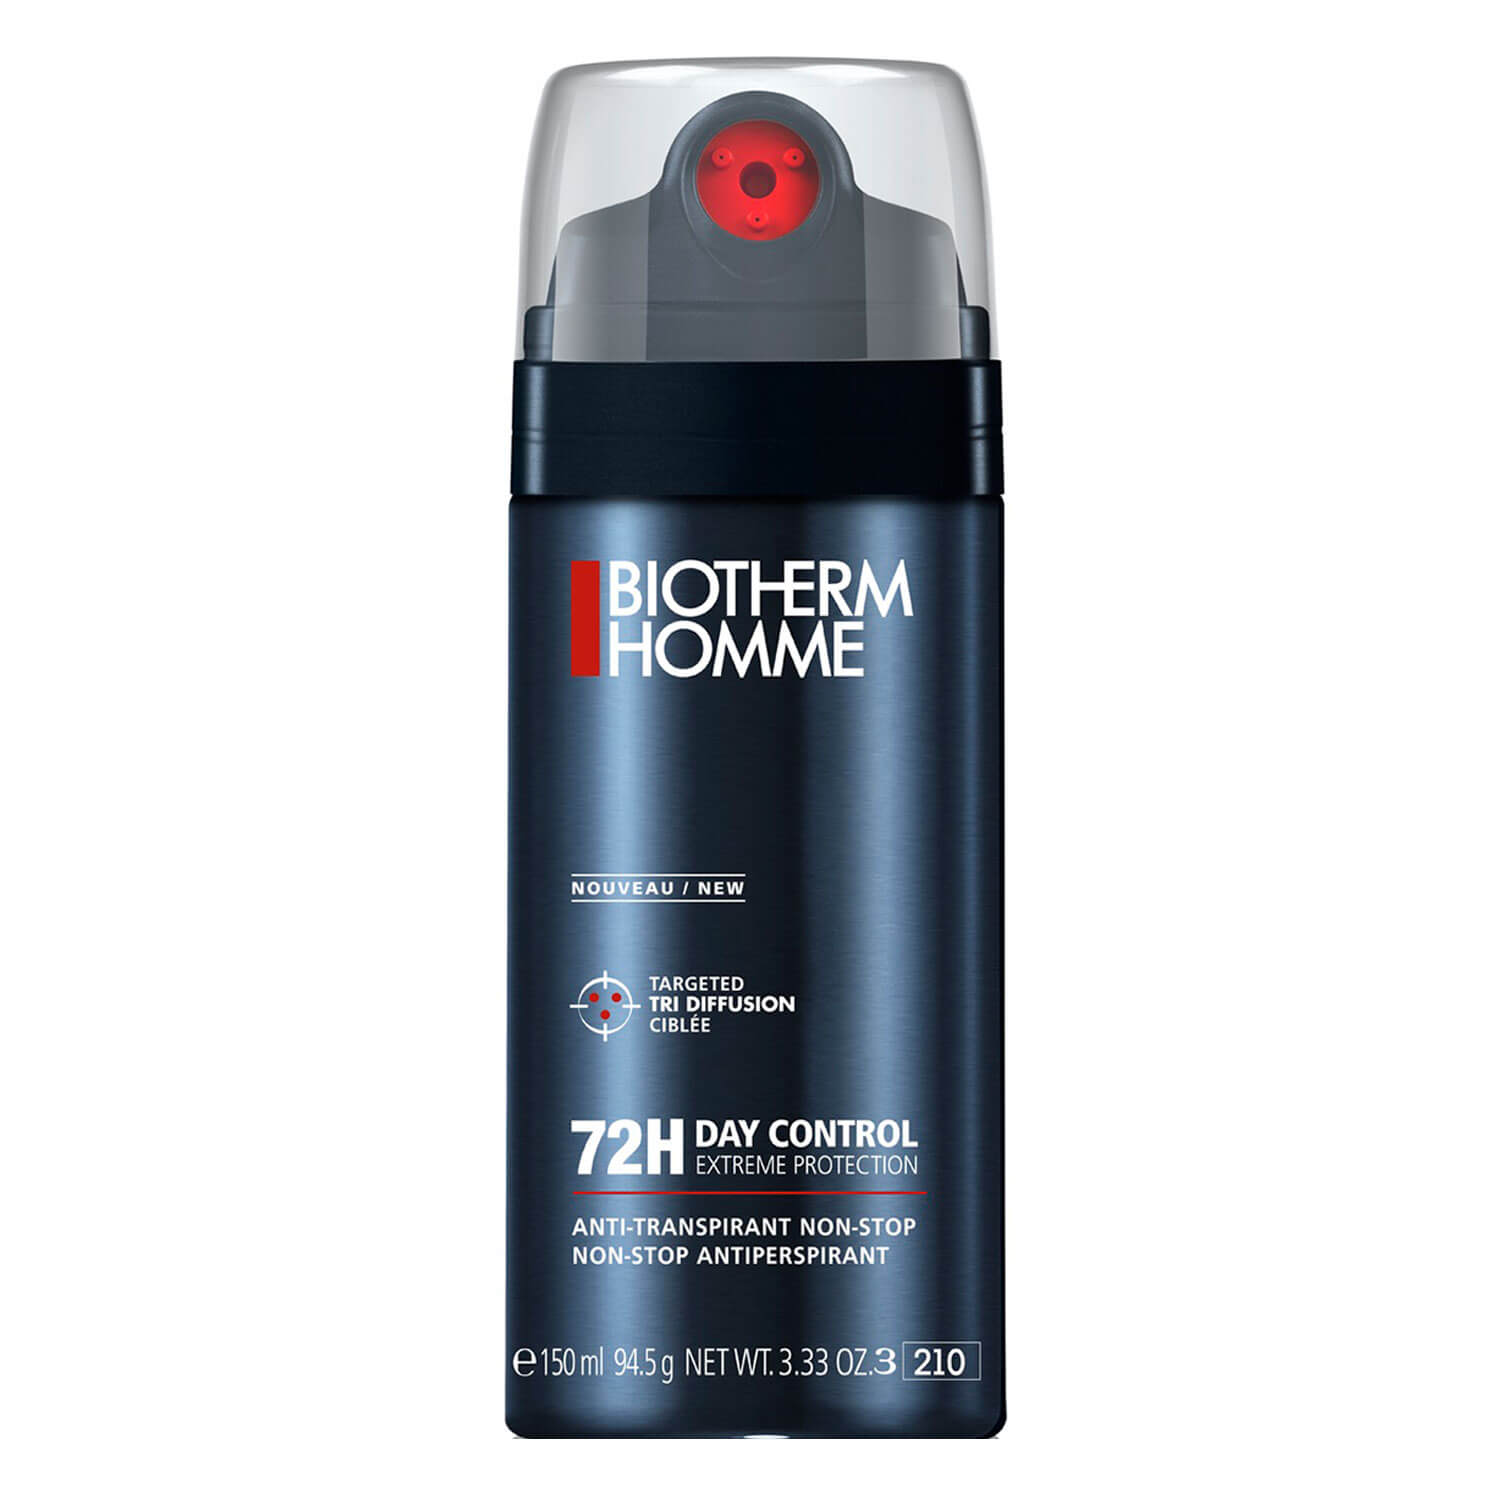 Biotherm Homme - Day Control 72H Extreme Protection Spray